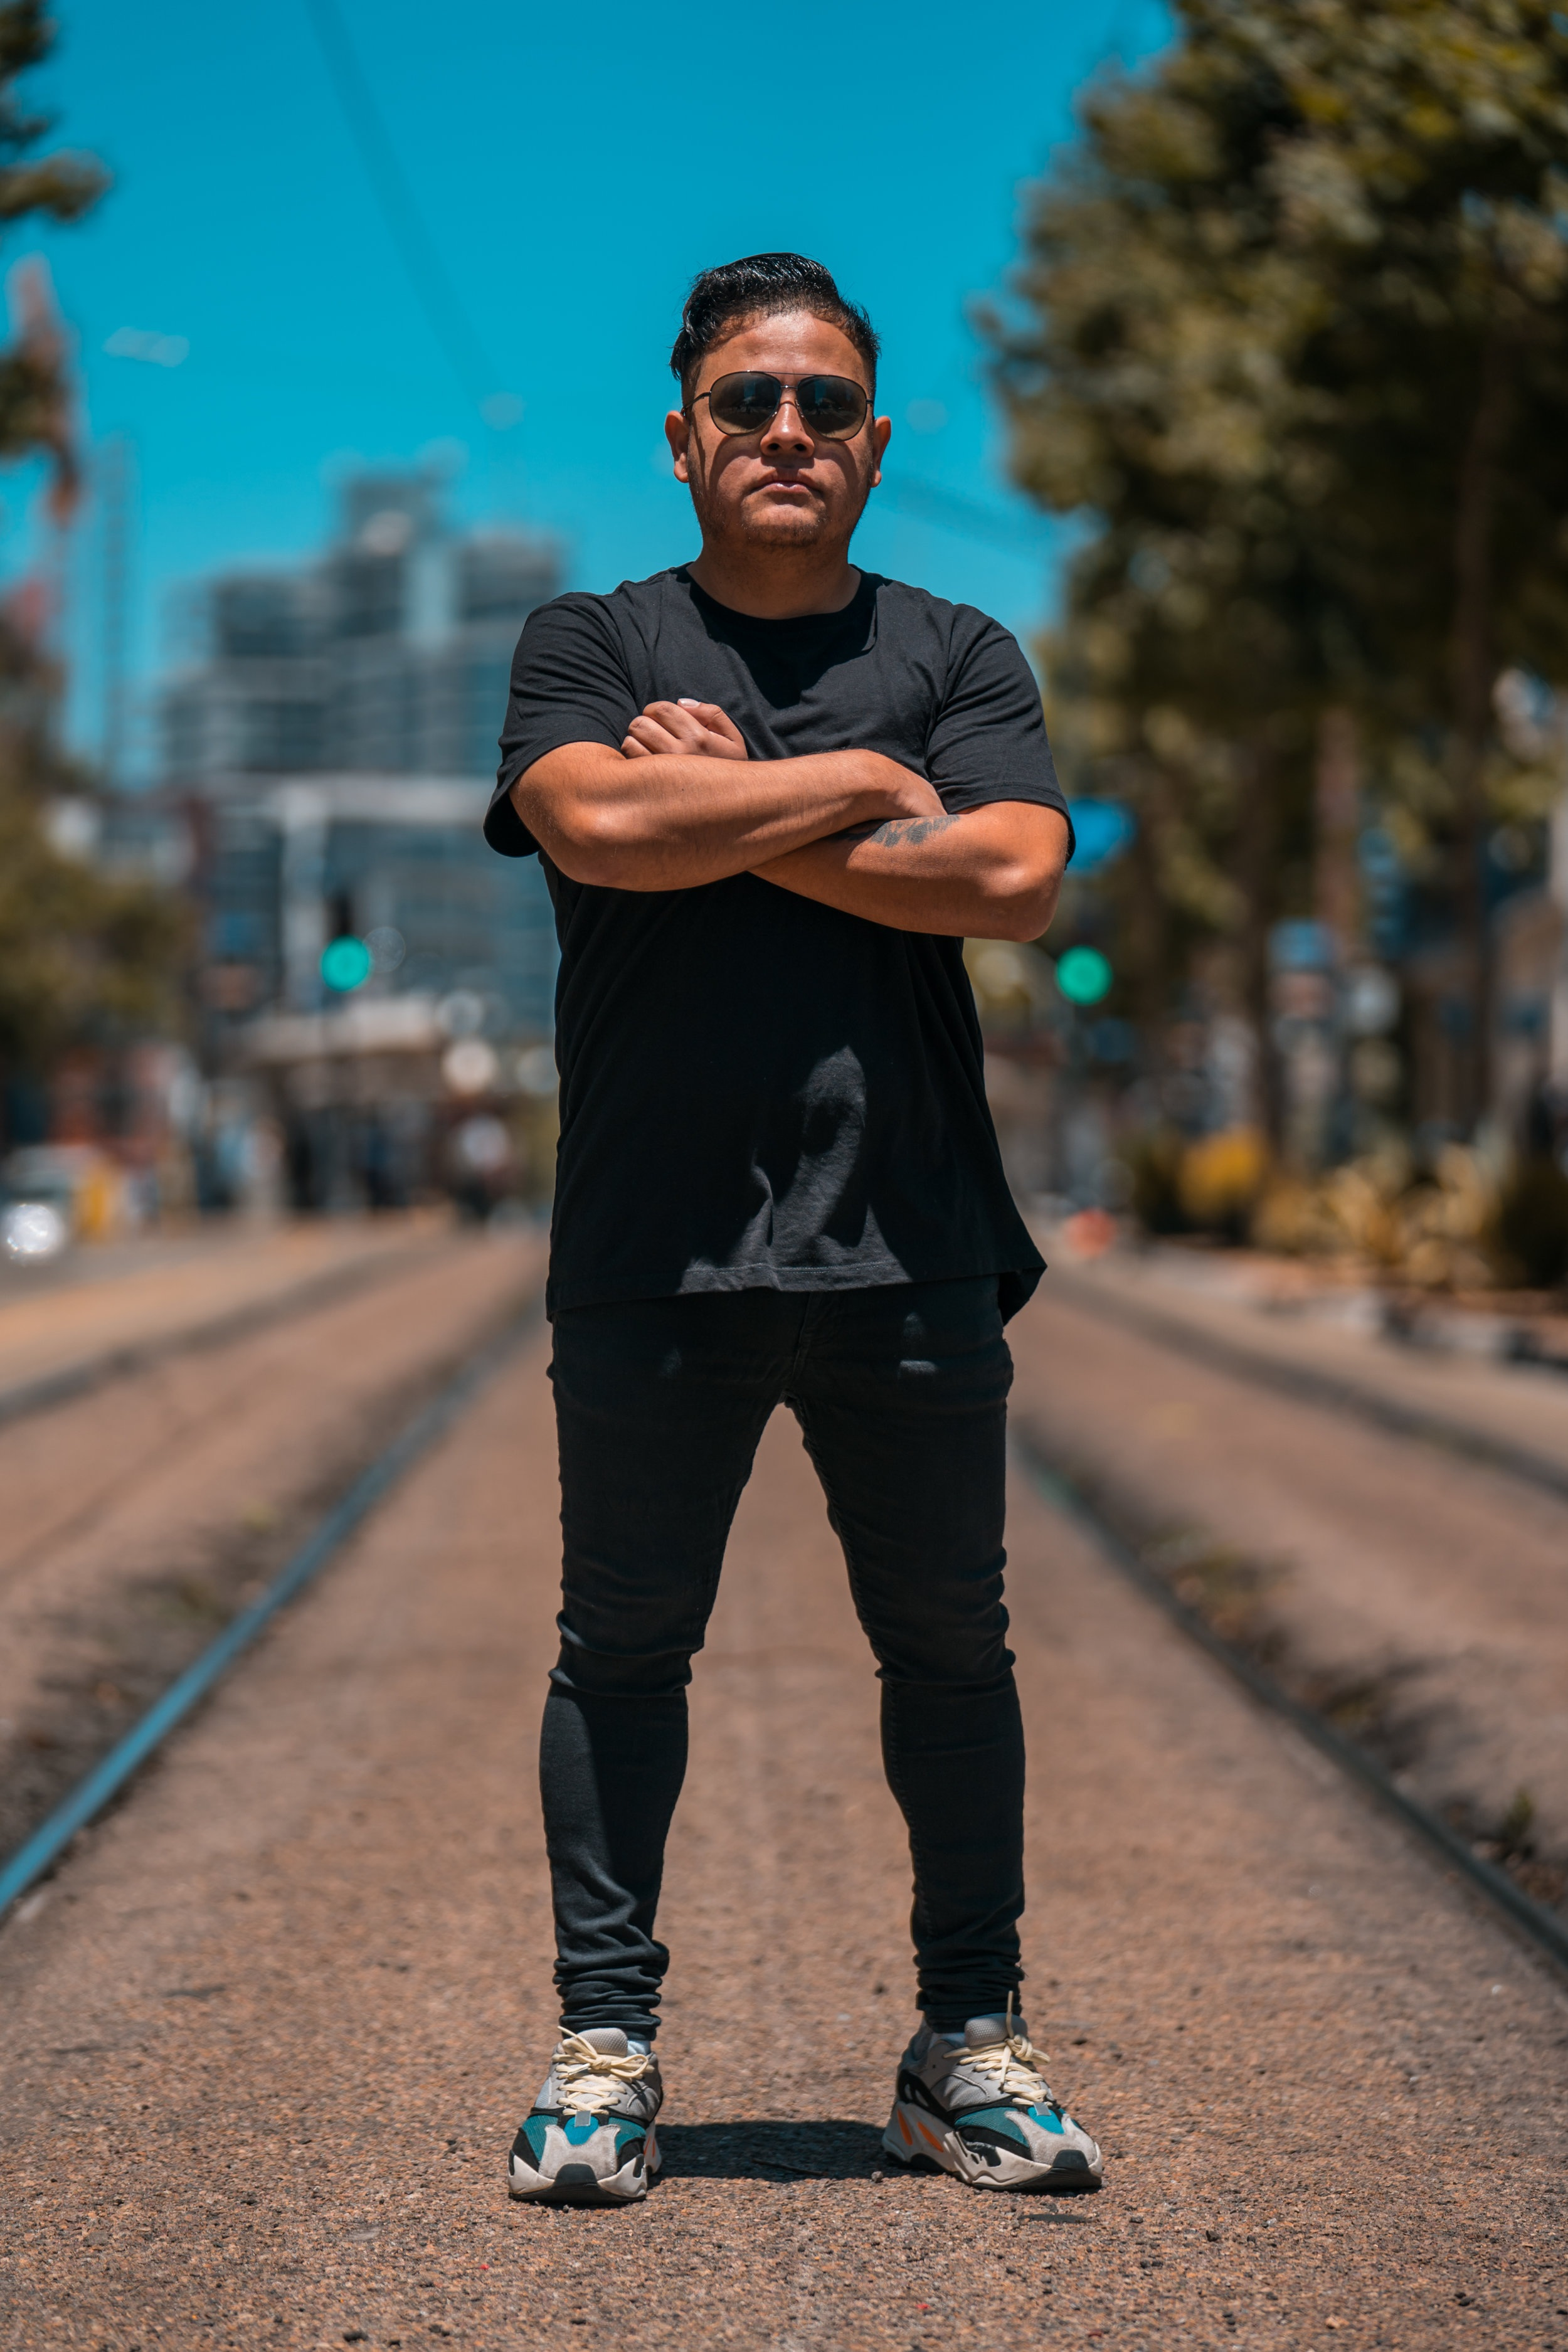 J Medina - DJ, producer and music enthusiast.In a short time, Jonathan Medina, best known as J. Medina, has become one the top DJ's not only in America but around the world. From 2016 to 2018, J. Medina competed against elite talent in the RedBull Music 3 Style DJ competition as a national finalist. Medina has really begun to establish himself as a worldwide brand by DJ'ing abroad in Chile, Mexico, Poland and Italy.With more than 10 years of professional DJ experience and a knack for creativity, J. Medina knows exactly how to captivate a crowd and rock a party. His sets have made people within the industry take notice, and now have him on everyone's radar.Most recently J. Medina has taken the role of producer and music editor for DJCity, the worldwide leader and music supplier for professional DJs. His remixes and edits have reached thousands of DJ's around the world and have been played everywhere from the SiriusXM airwaves to the biggest nightclubs worldwide.For J. Medina the sky is the limit. His work ethic and talent have him ready to take on the world.